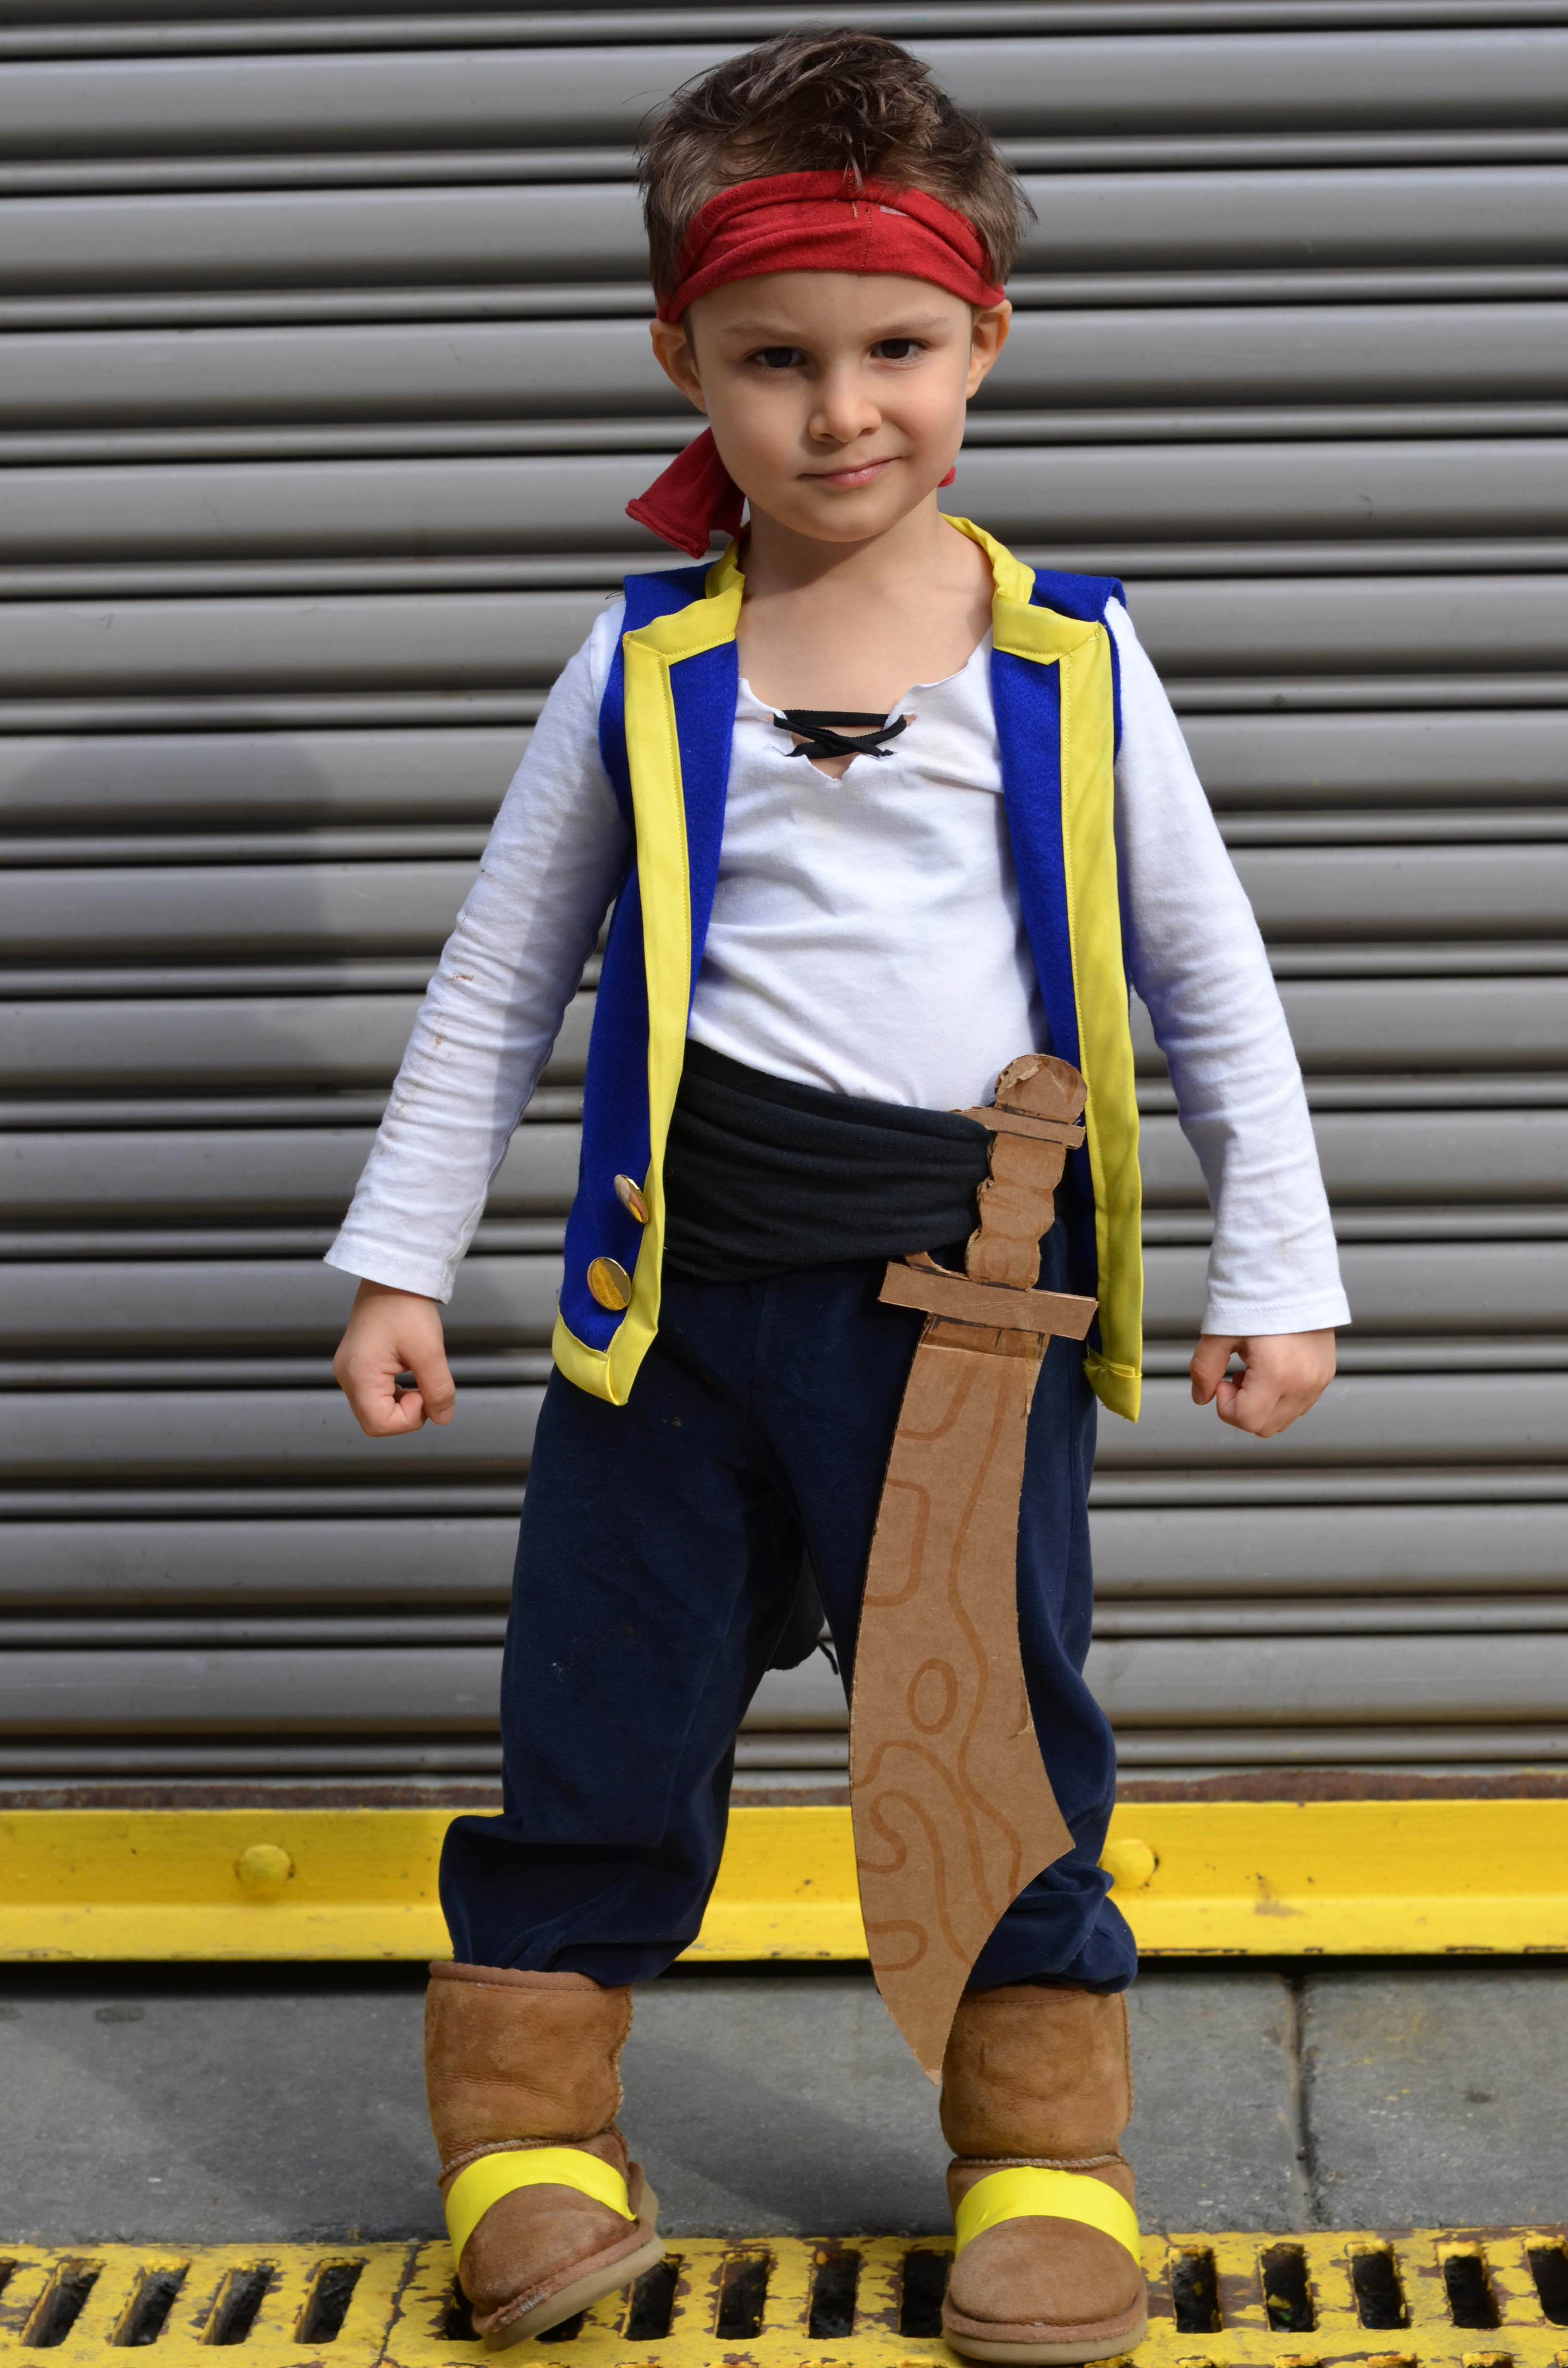 Best ideas about DIY Kids Pirate Costume . Save or Pin DIY Halloween Costumes for Kids Now.